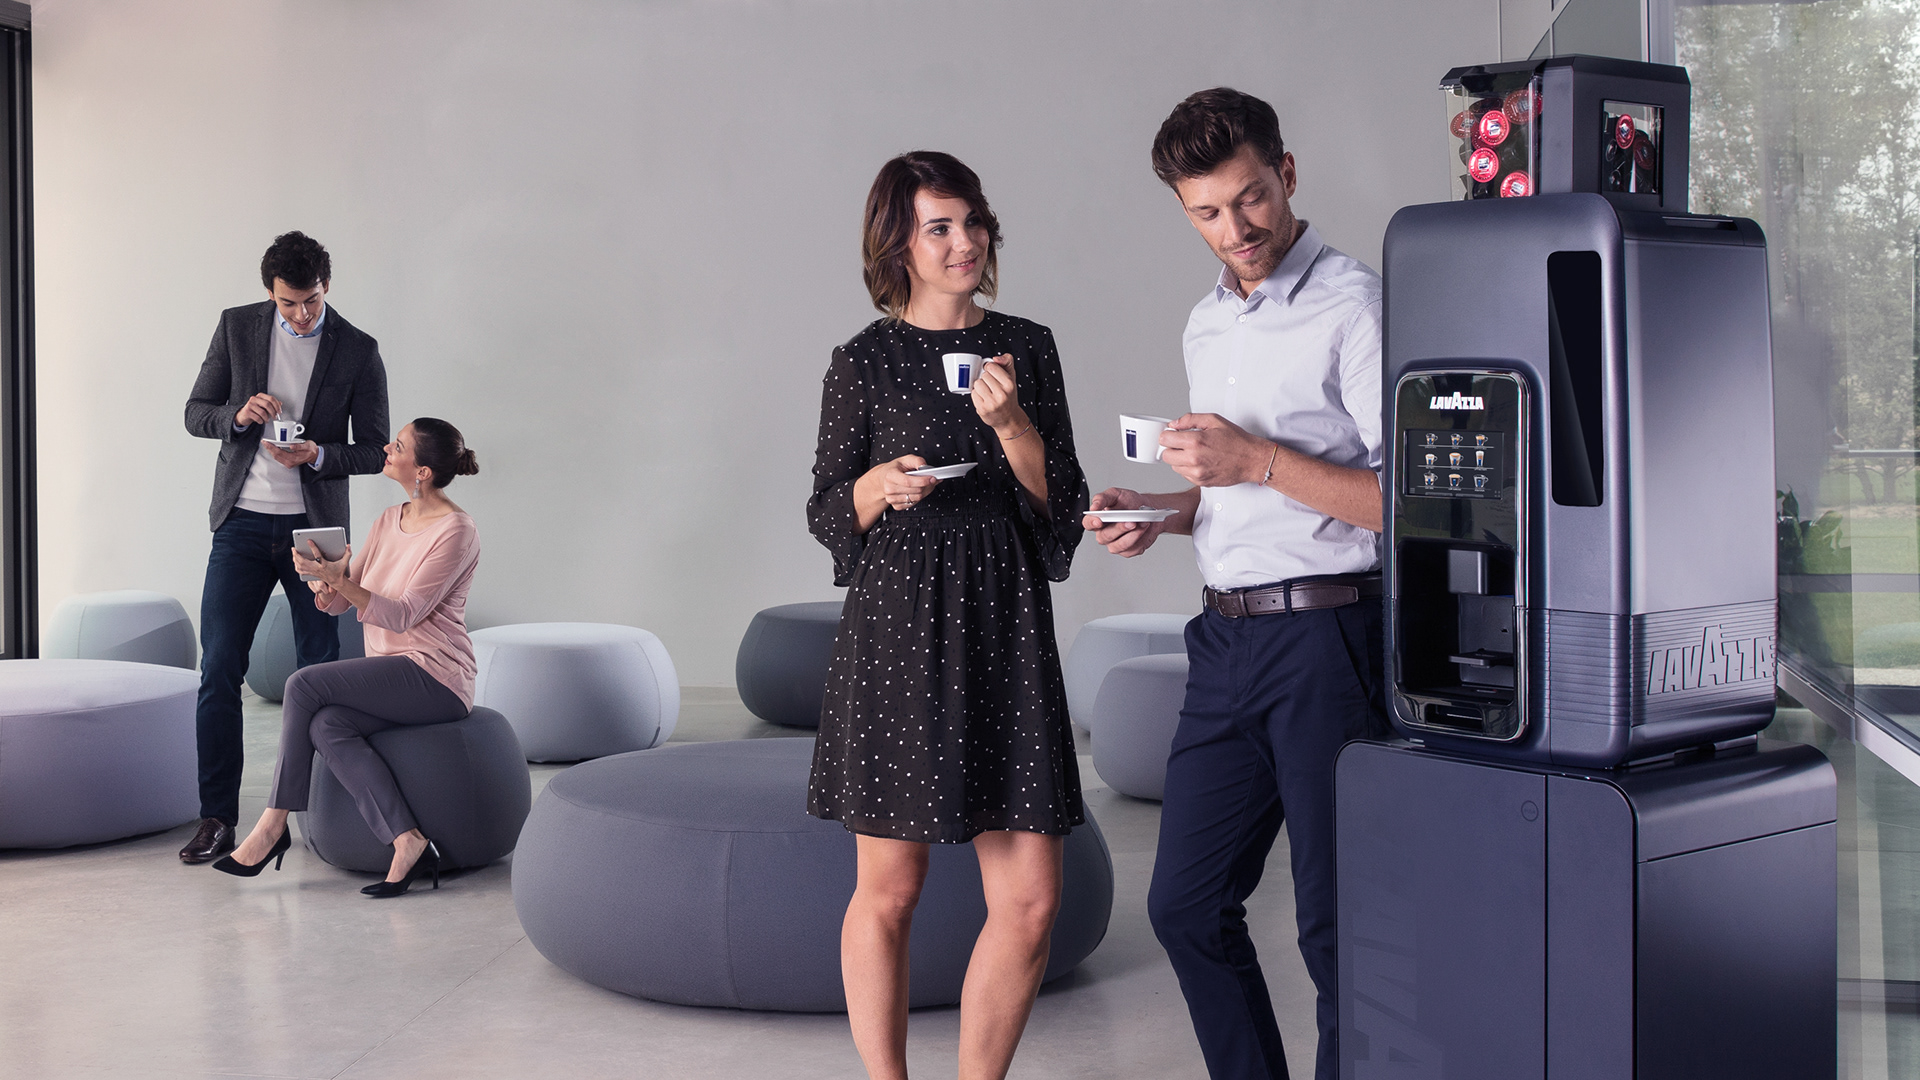 Lorenzo Croce - Photographer - LAVAZZA -Office Consumer